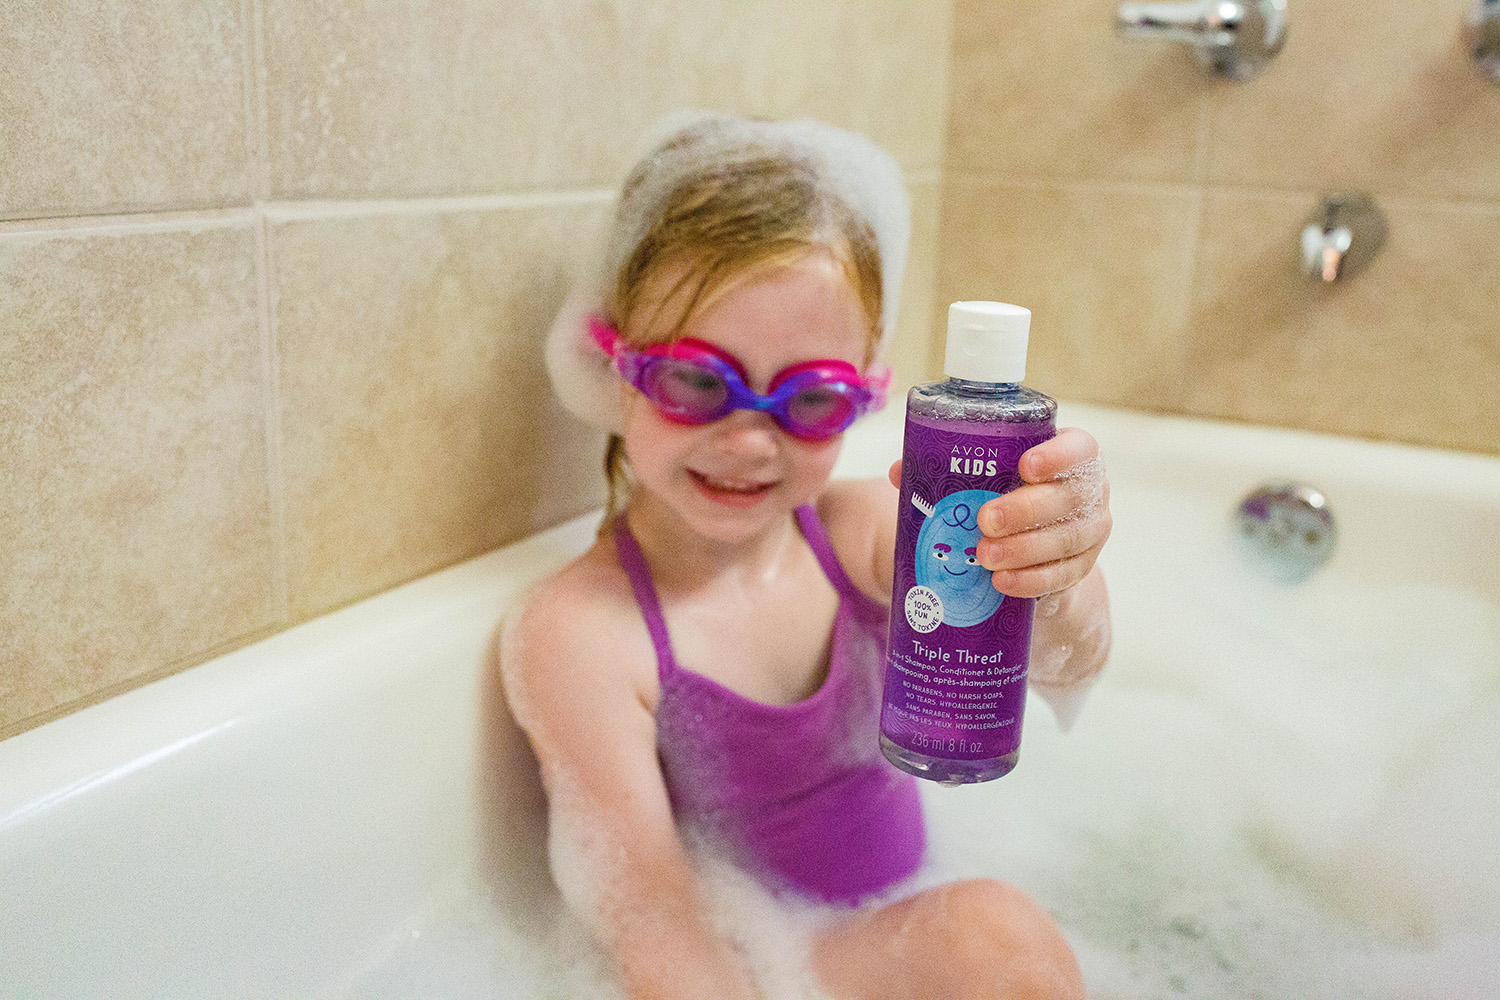 Paraben Free Shampoo: This new shampoo from Avon Kids is AMAZING!